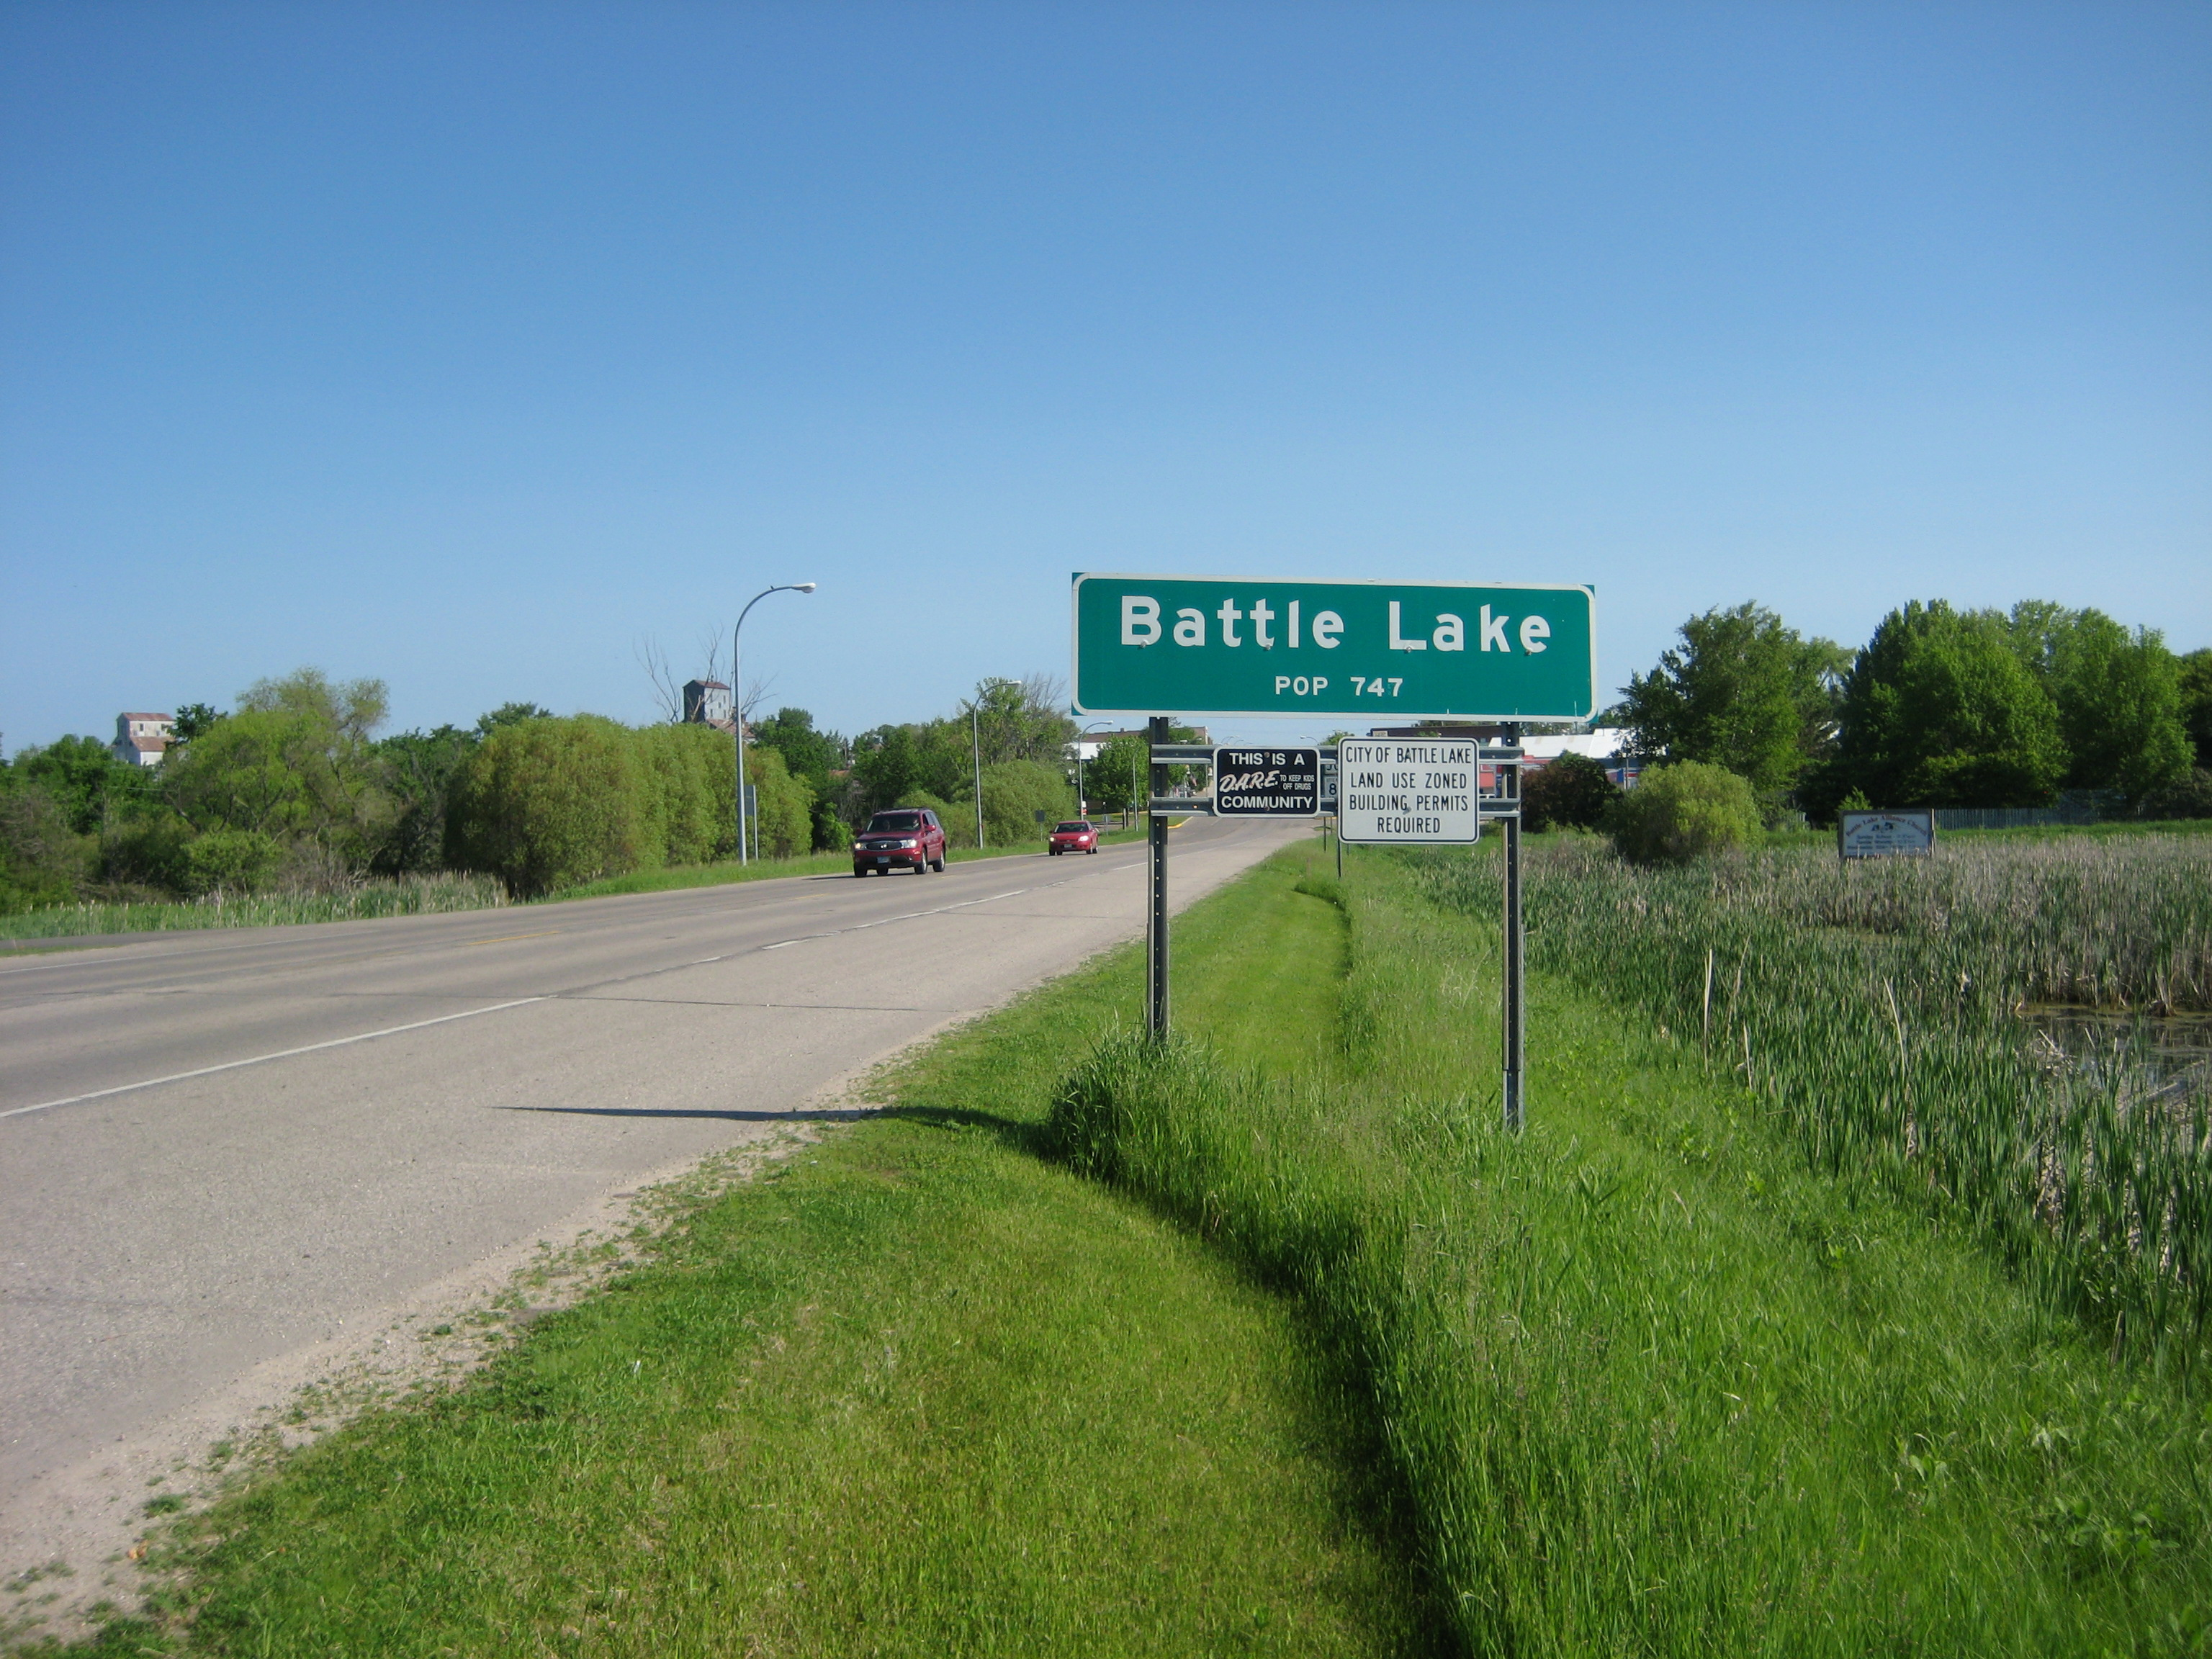 battle lake asian single men Bittersweet bison is located in battle lake, minnesota  and employs approximately 2 people at this single location  asian 30 native american 4 hawaiian 3.